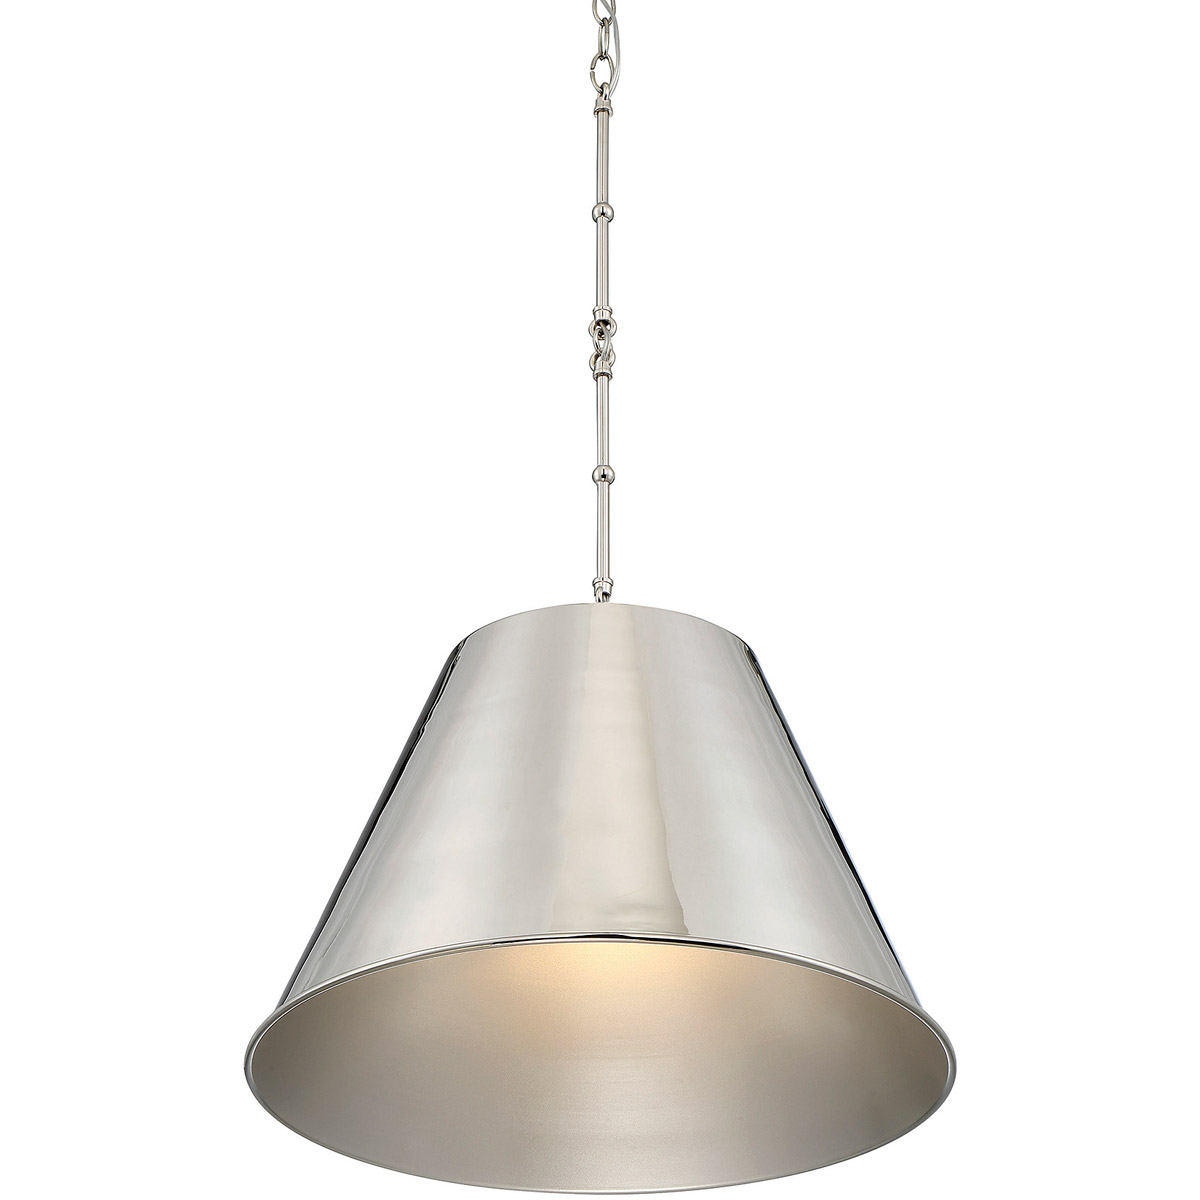 Modern Bedrooms With Eye Catching Hanging Lamps: Savoy House Lighting 7-131-1-109 Alden Pendant Polished